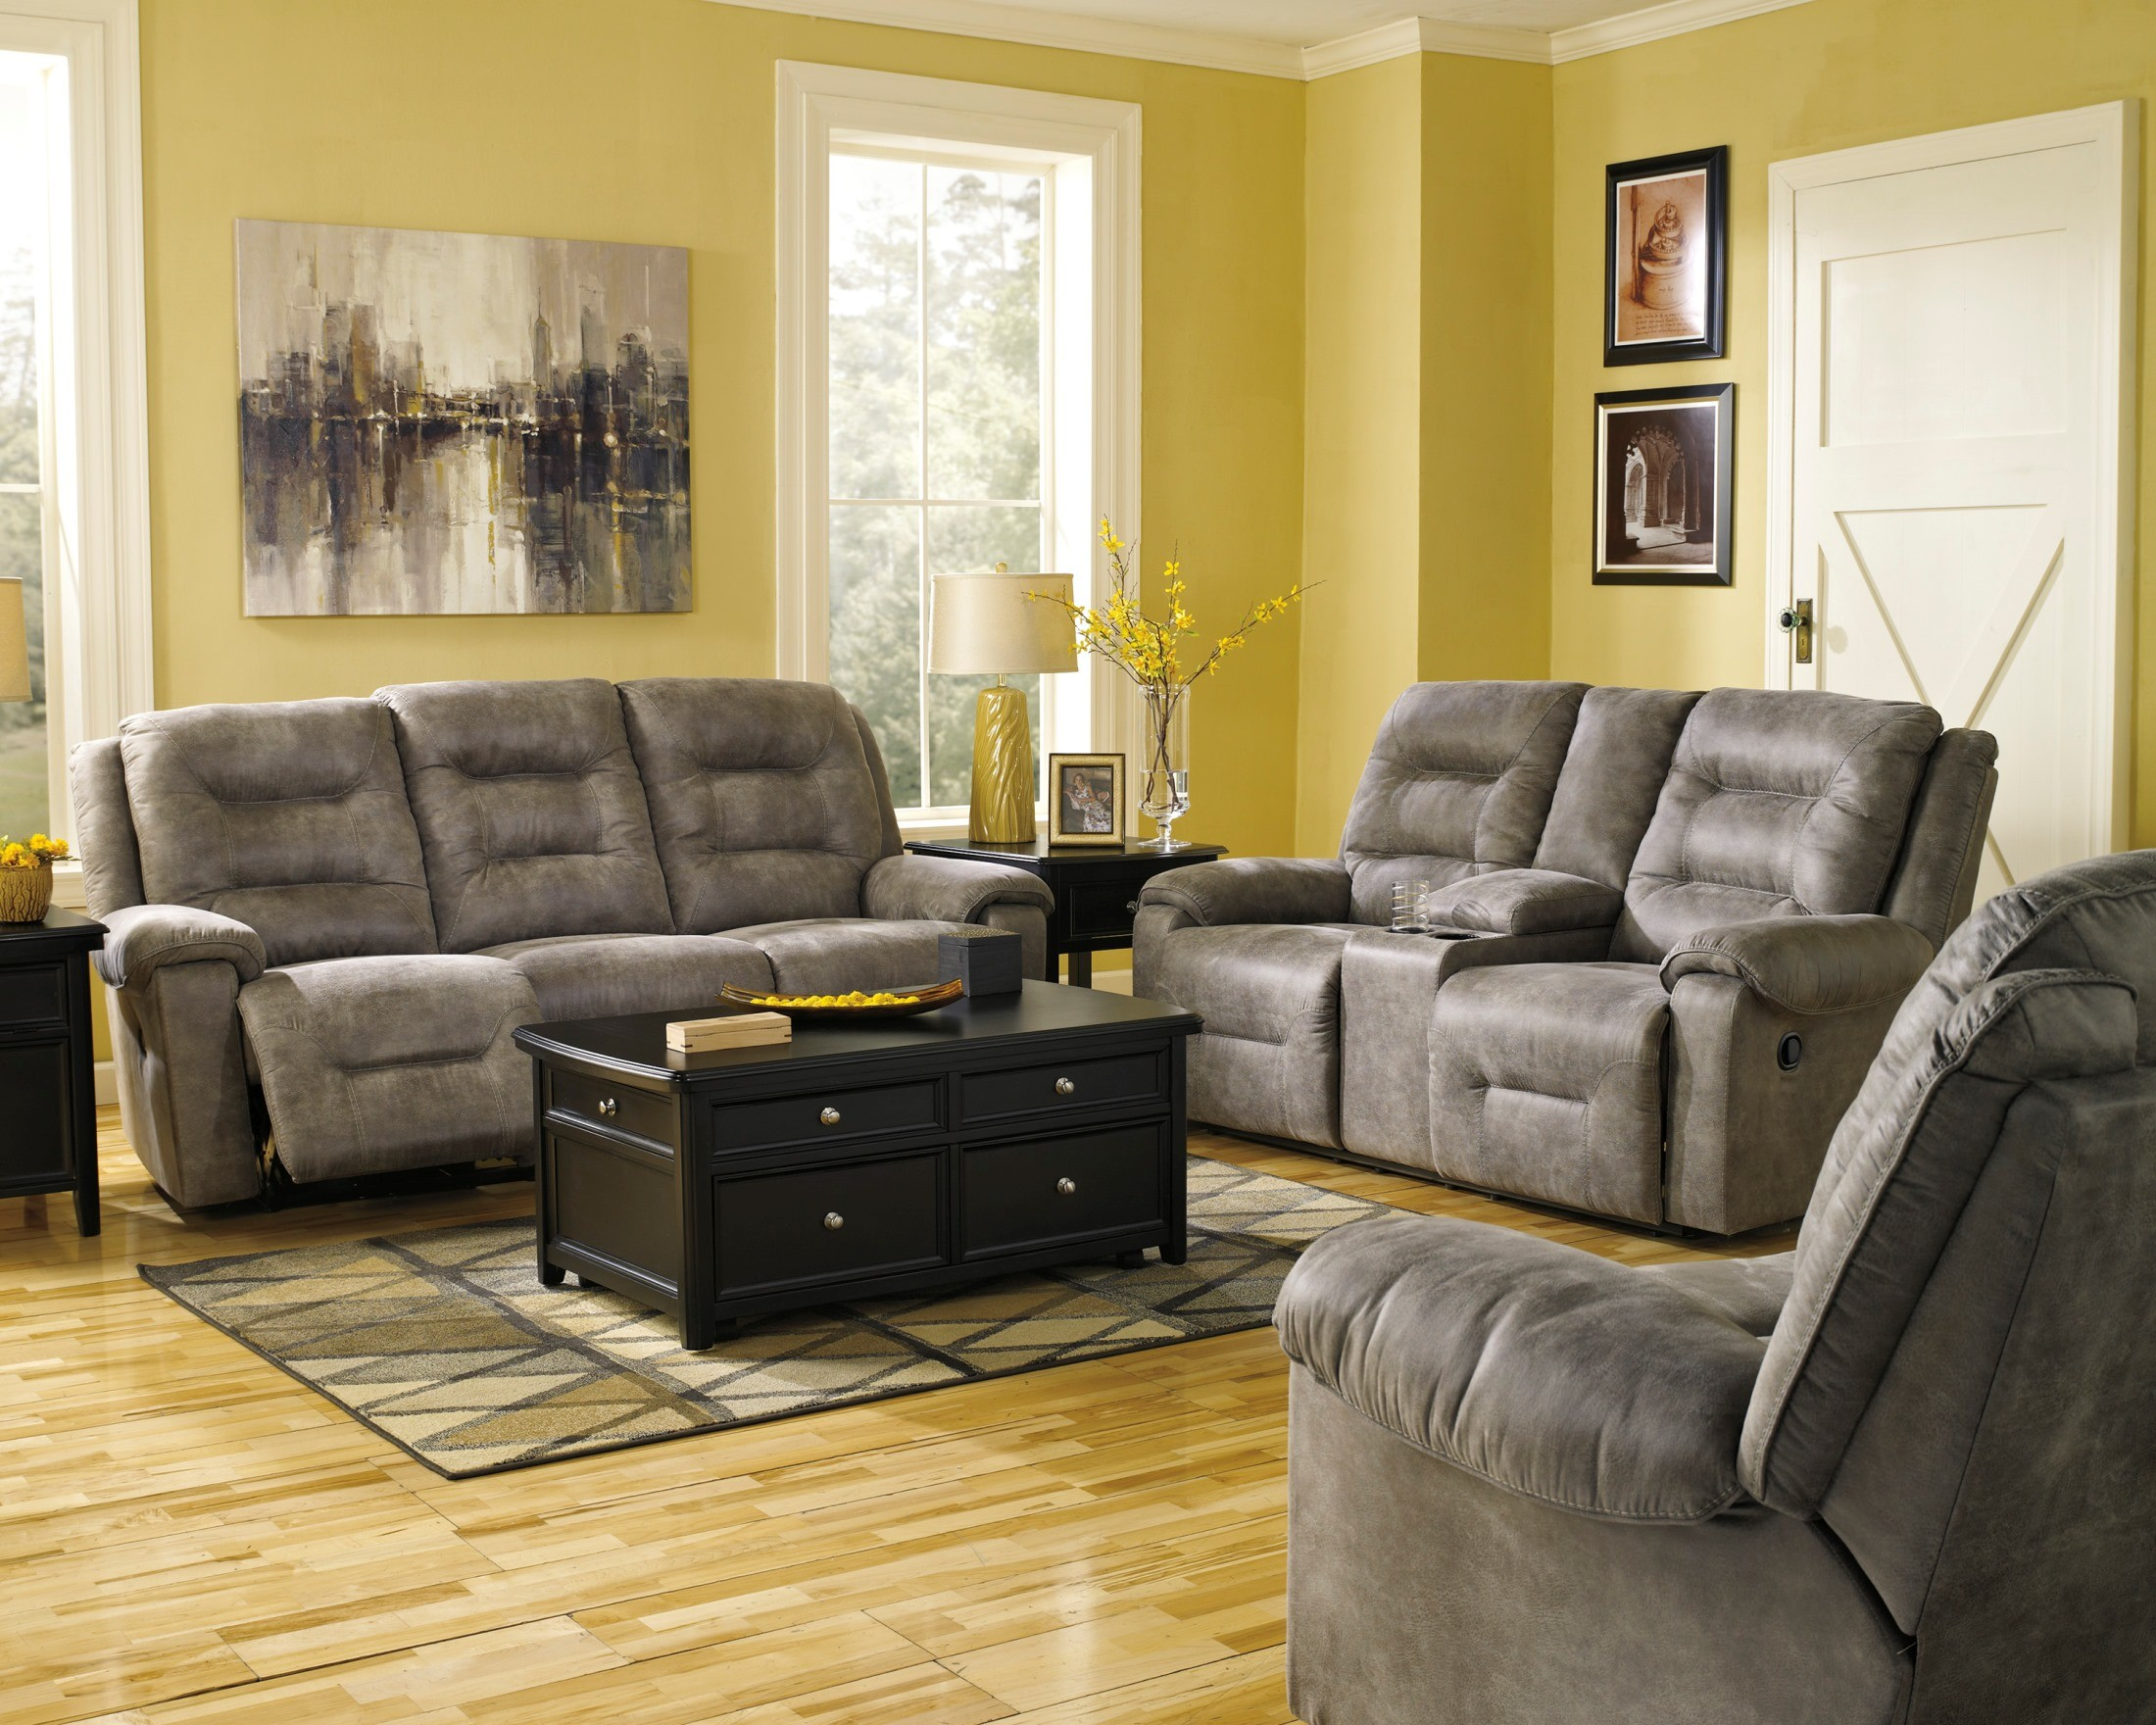 Rotation Smoke Power Reclining Living Room Set From Ashley 97501 87 pertaining to 15 Some of the Coolest Ways How to Craft Reclining Sofa Living Room Set